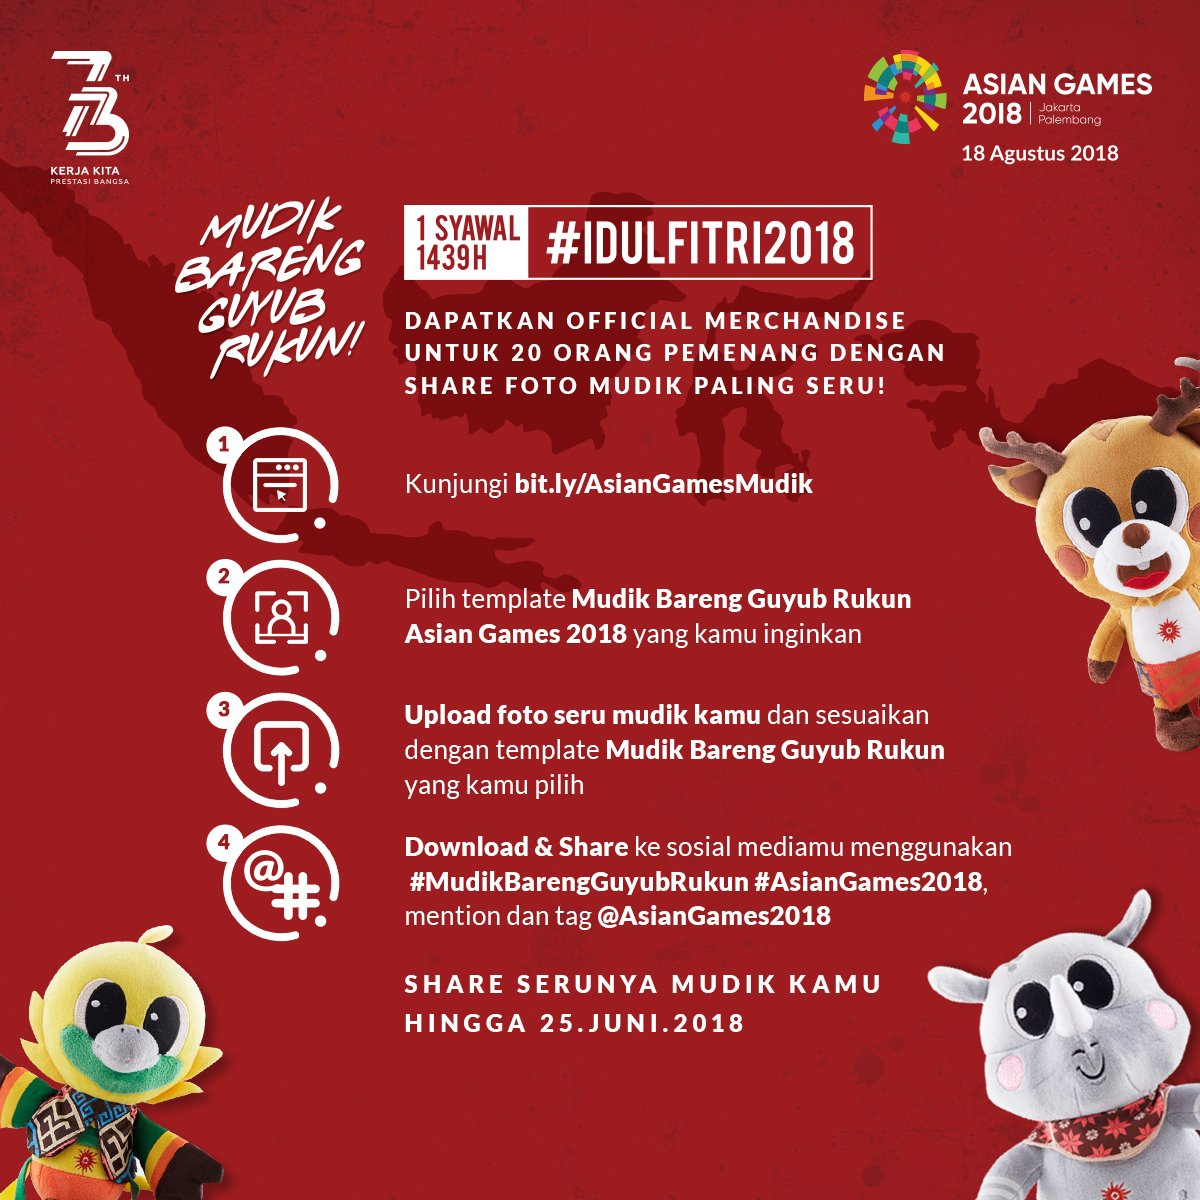 DfksyKRUEAACa9C - Asian Games Hashtag